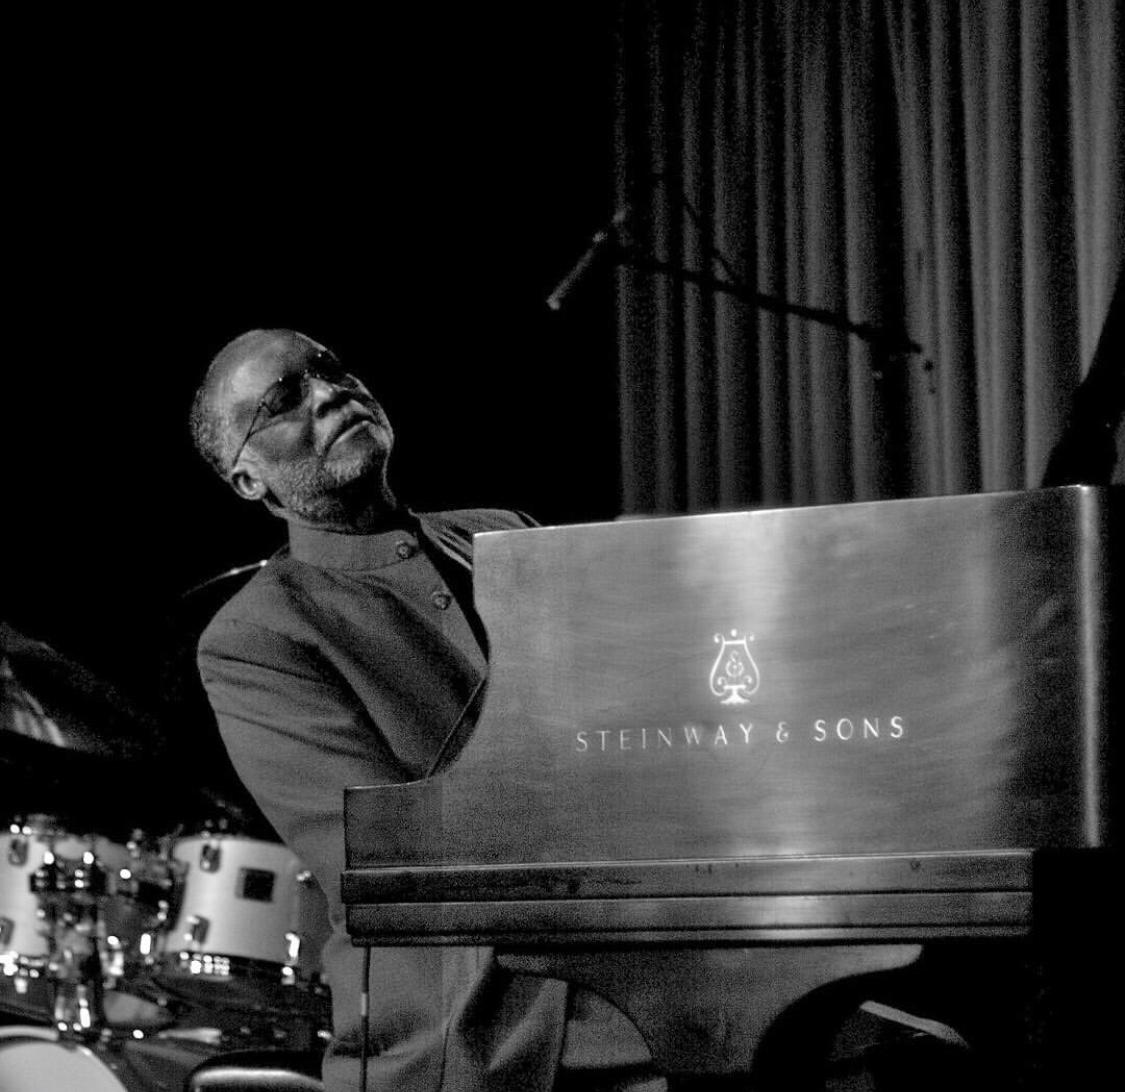 egendary American Jazz pianist Ahmad Jamal—one of many Steinway Artists performing @SFJAZZ this season, including @chuchovaldes, @bradmehldau, @KennyBarron88, @vijayiyer, @christiansands1 and @morethan88. See the full lineup at sfjazz.org